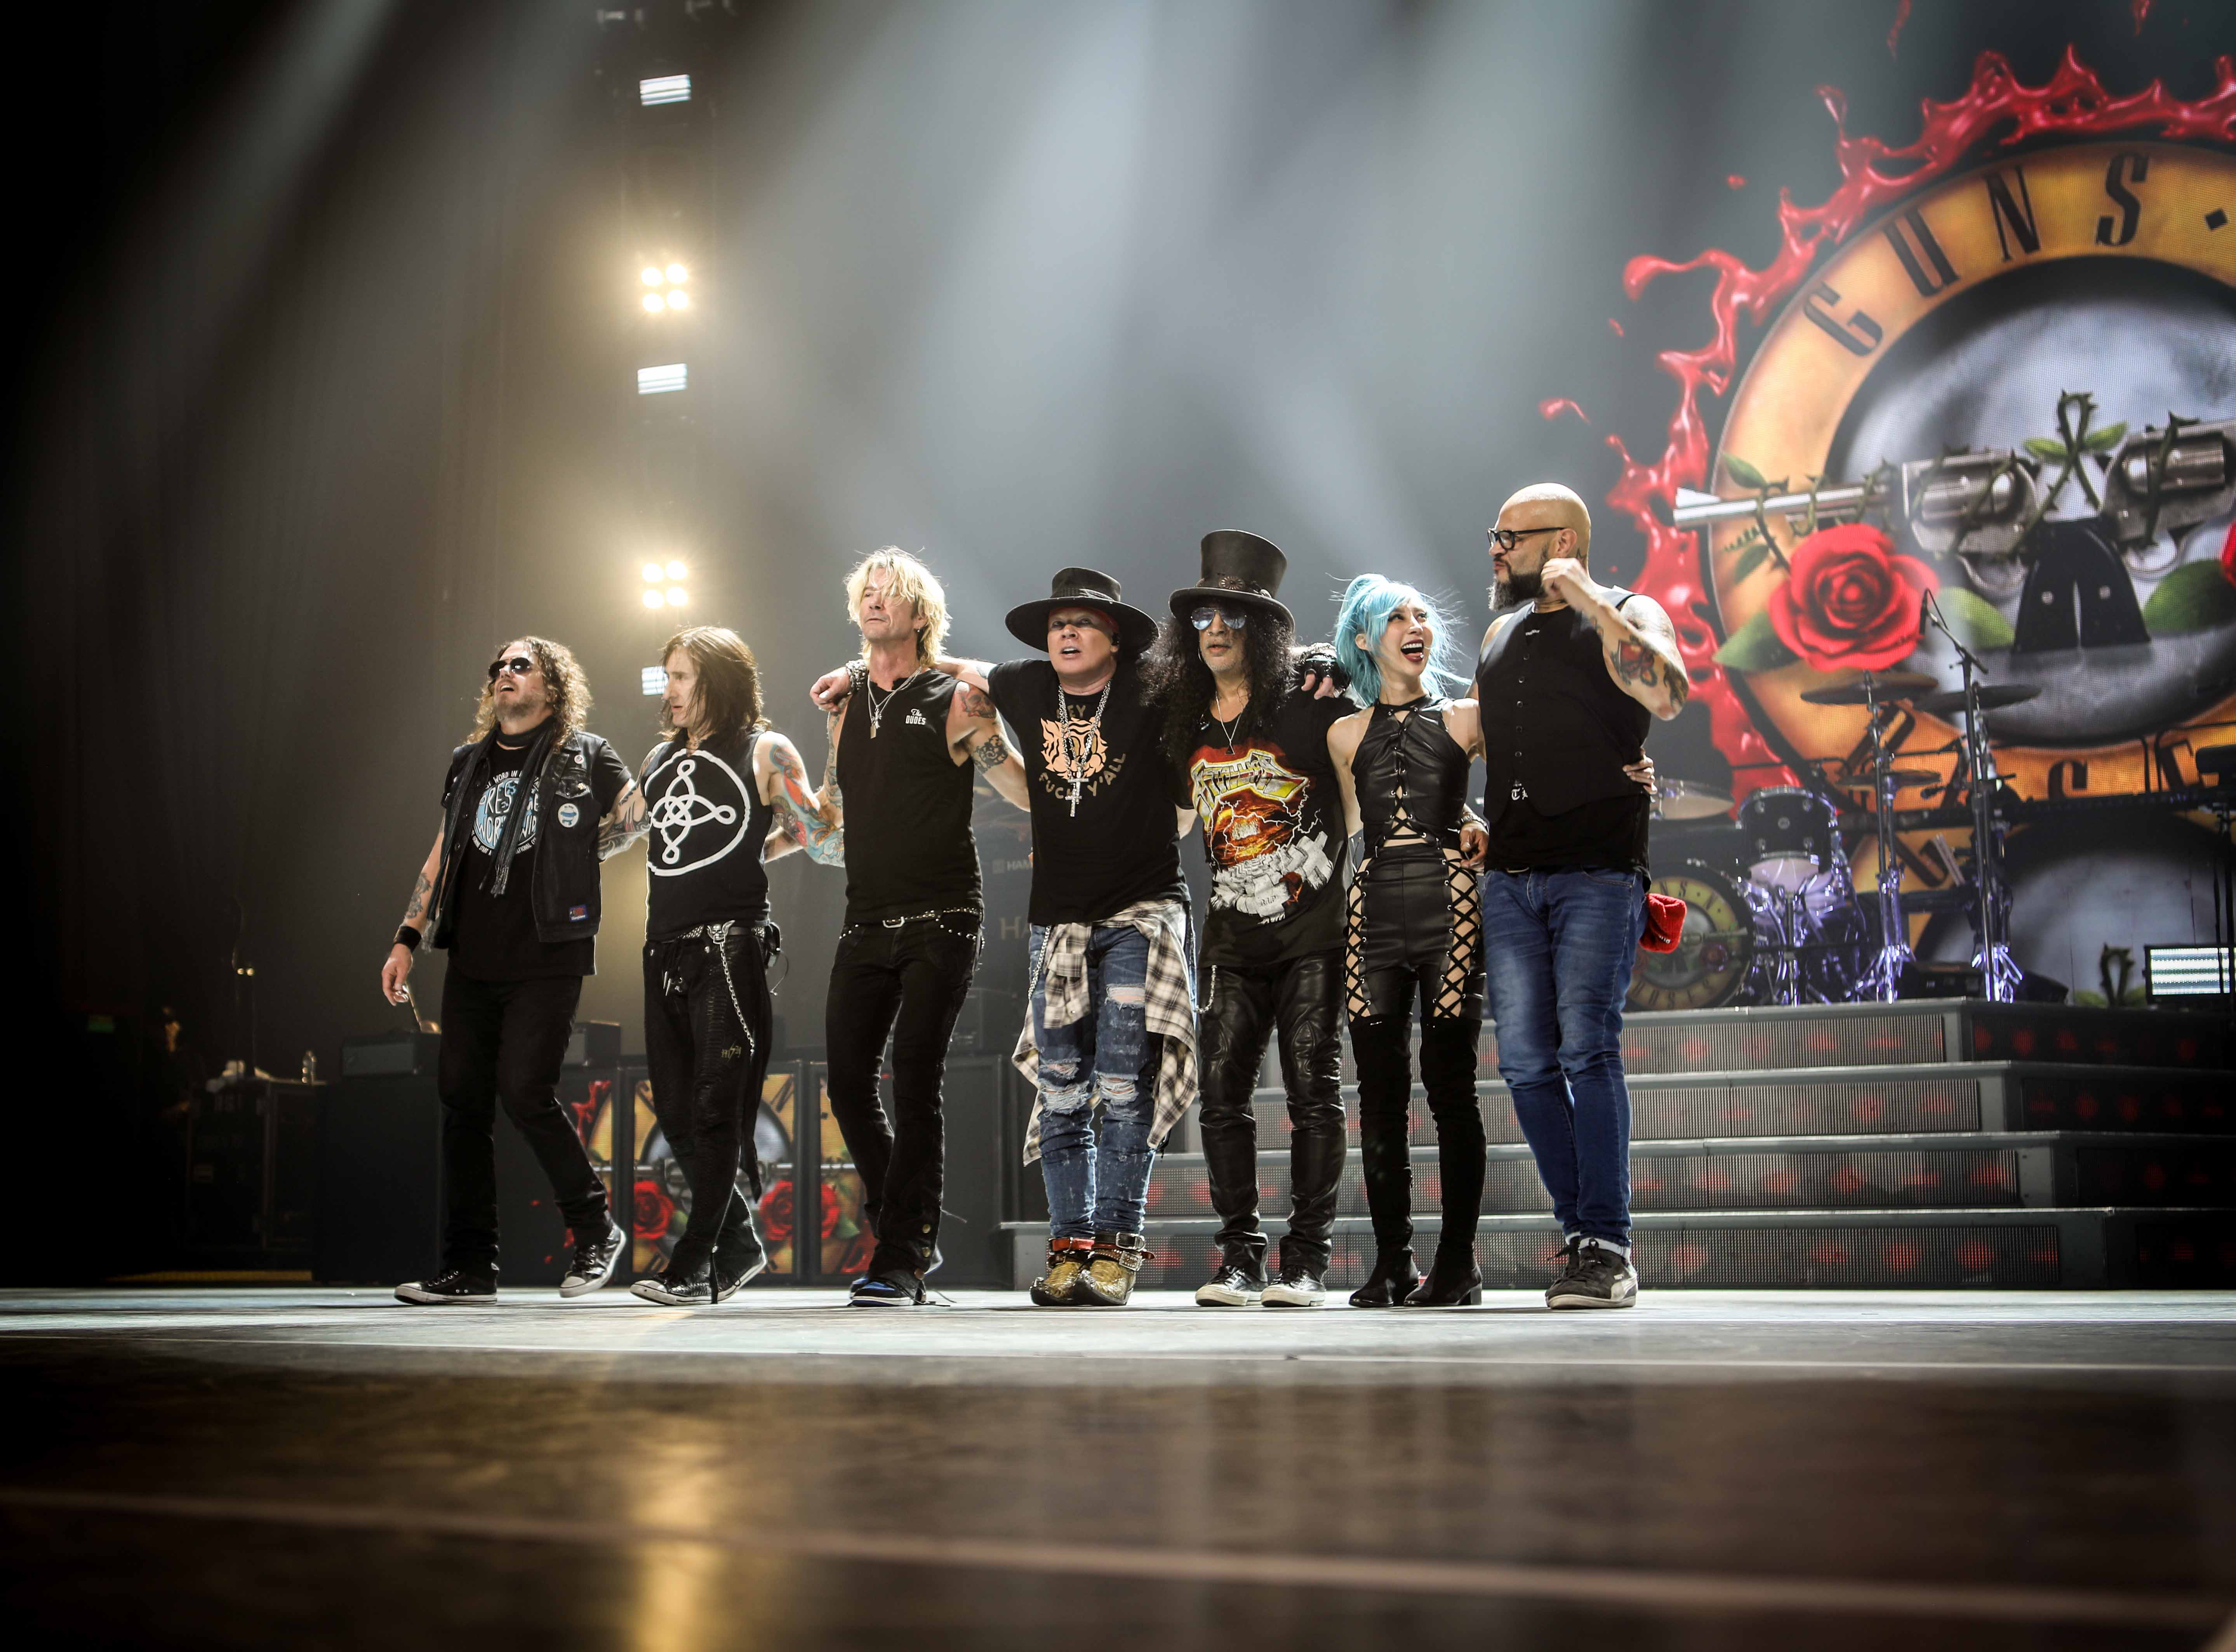 Guns 'N' Roses announce Dublin show at Marlay Park